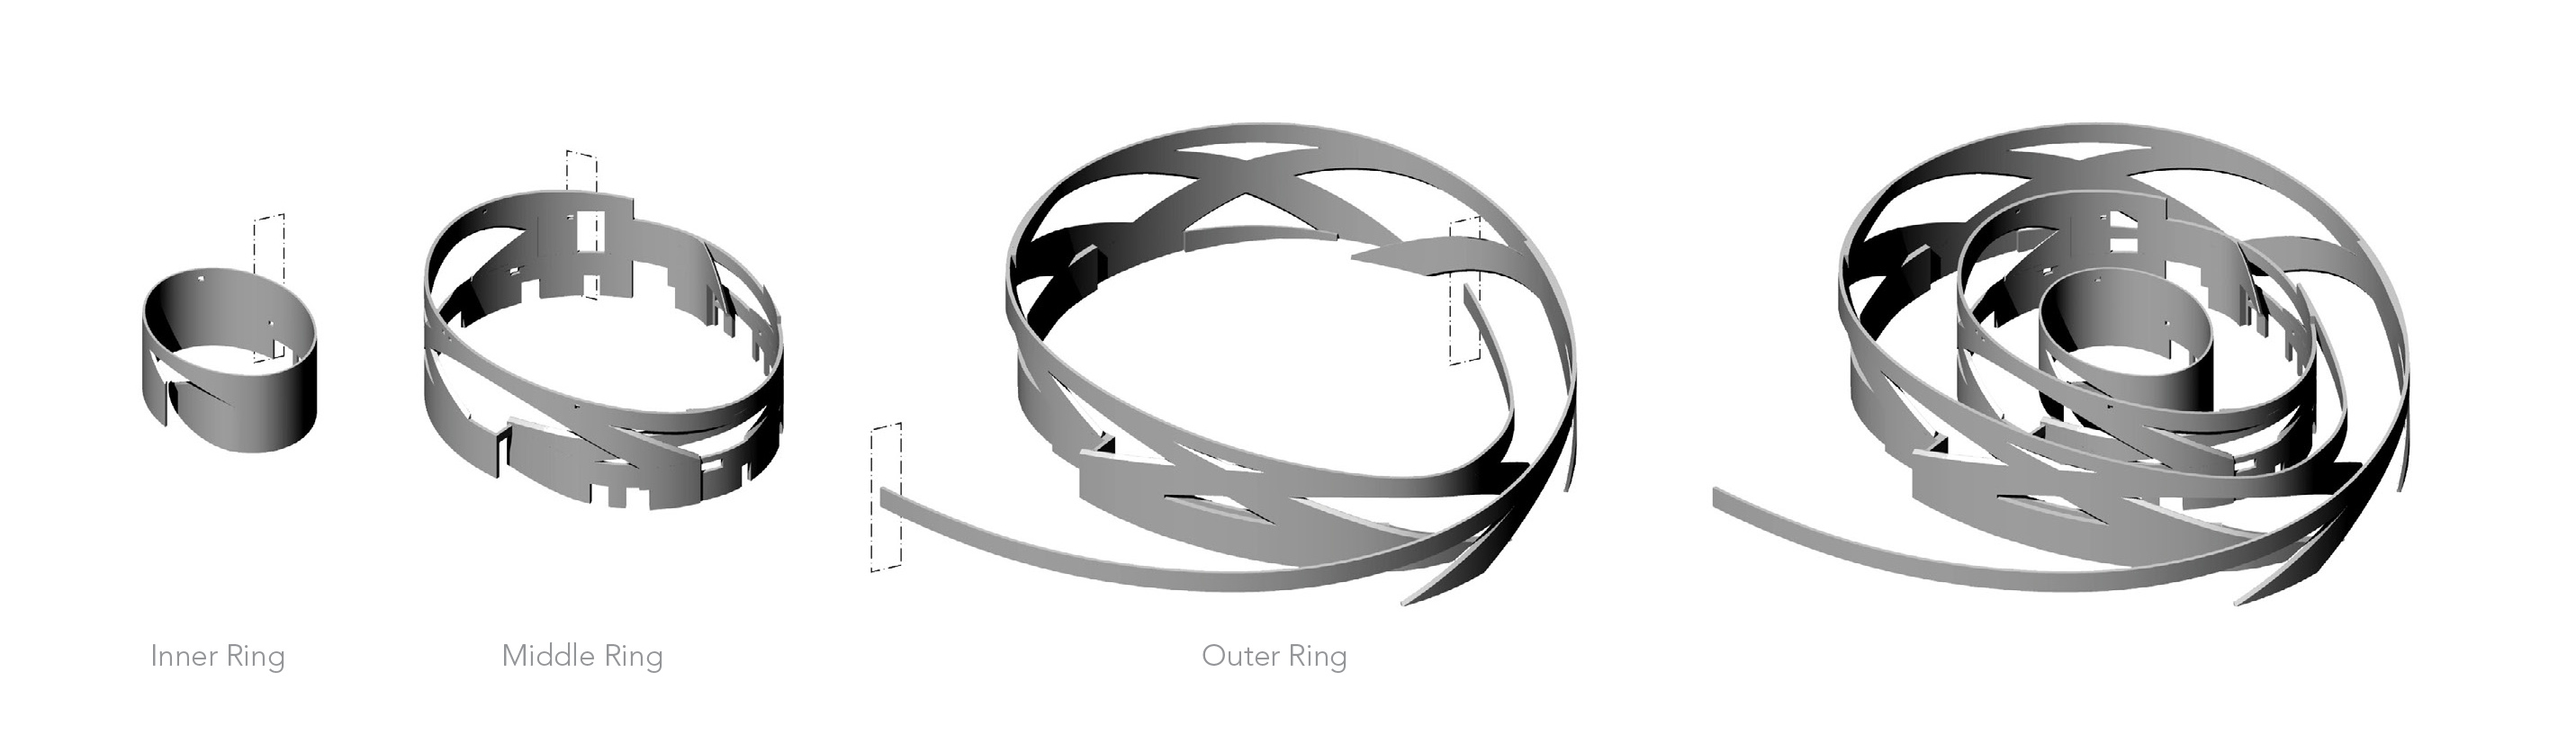 Concrete Ring Diagram